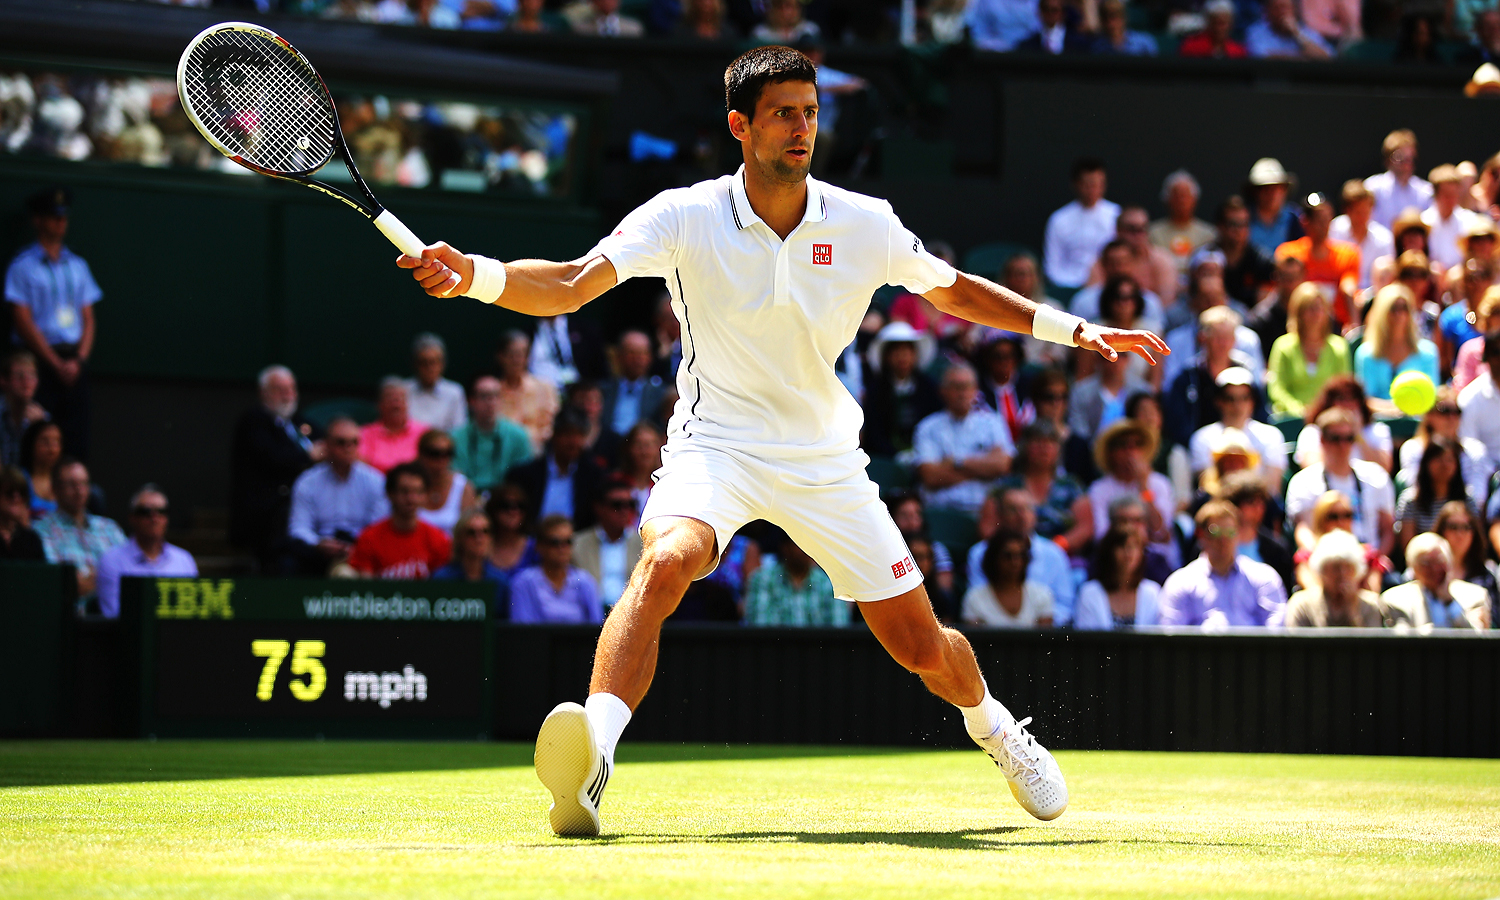 Props to Uniqlo for getting a little color in there, even if it's just black piping that contrasts nicely with their red logo. In a sea of all-white, Djokovic stands out.